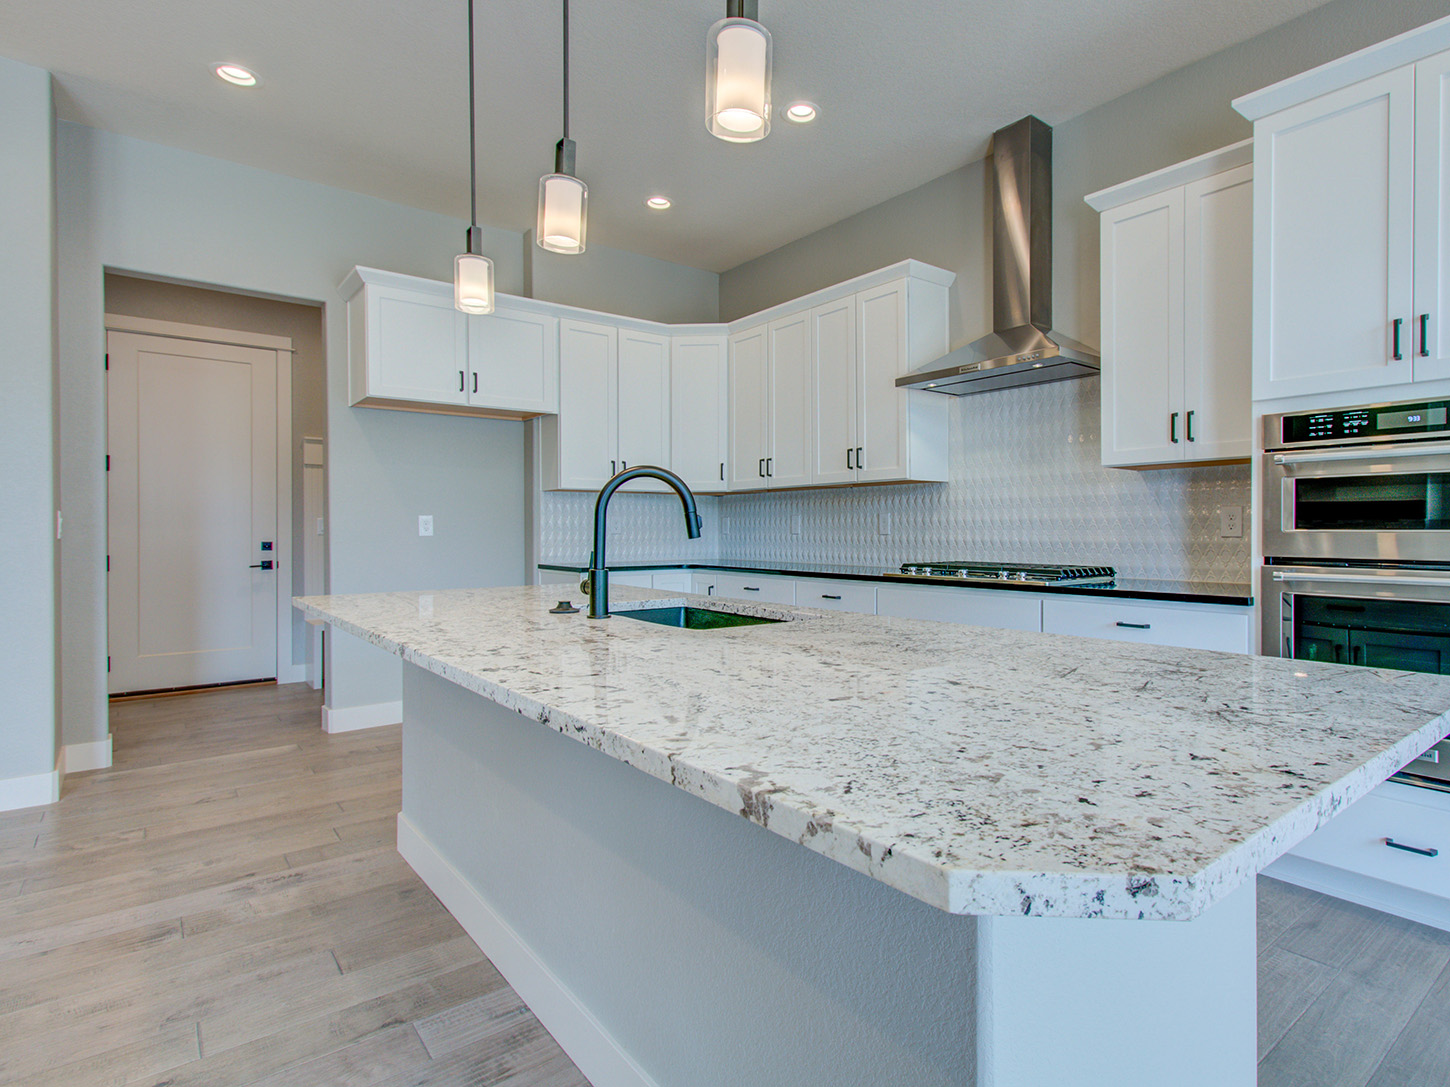 07_mickelson_loveland_kitchen_new_20homes_20for_20sale